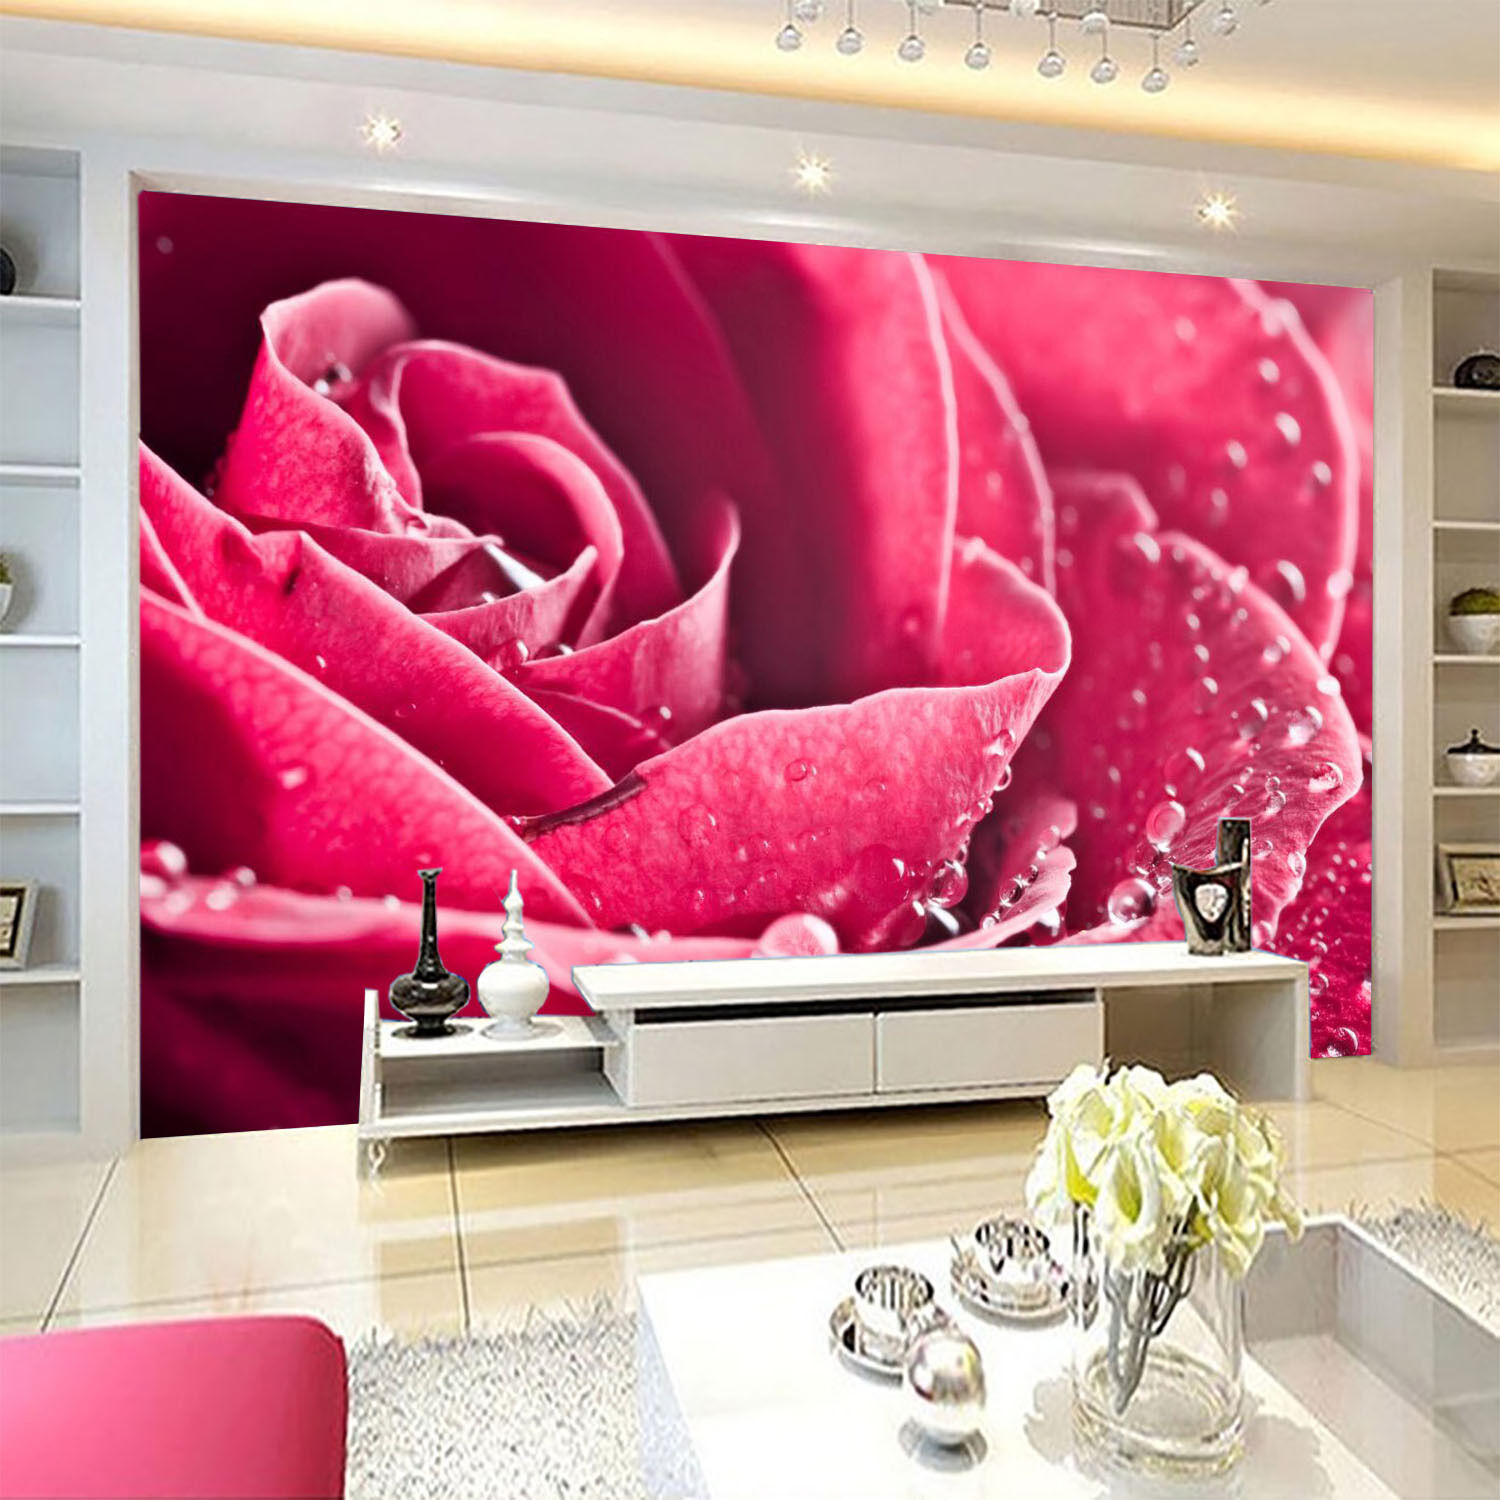 3D Flowers Dews 569 WallPaper Murals Wall Print Decal Wall Deco AJ WALLPAPER